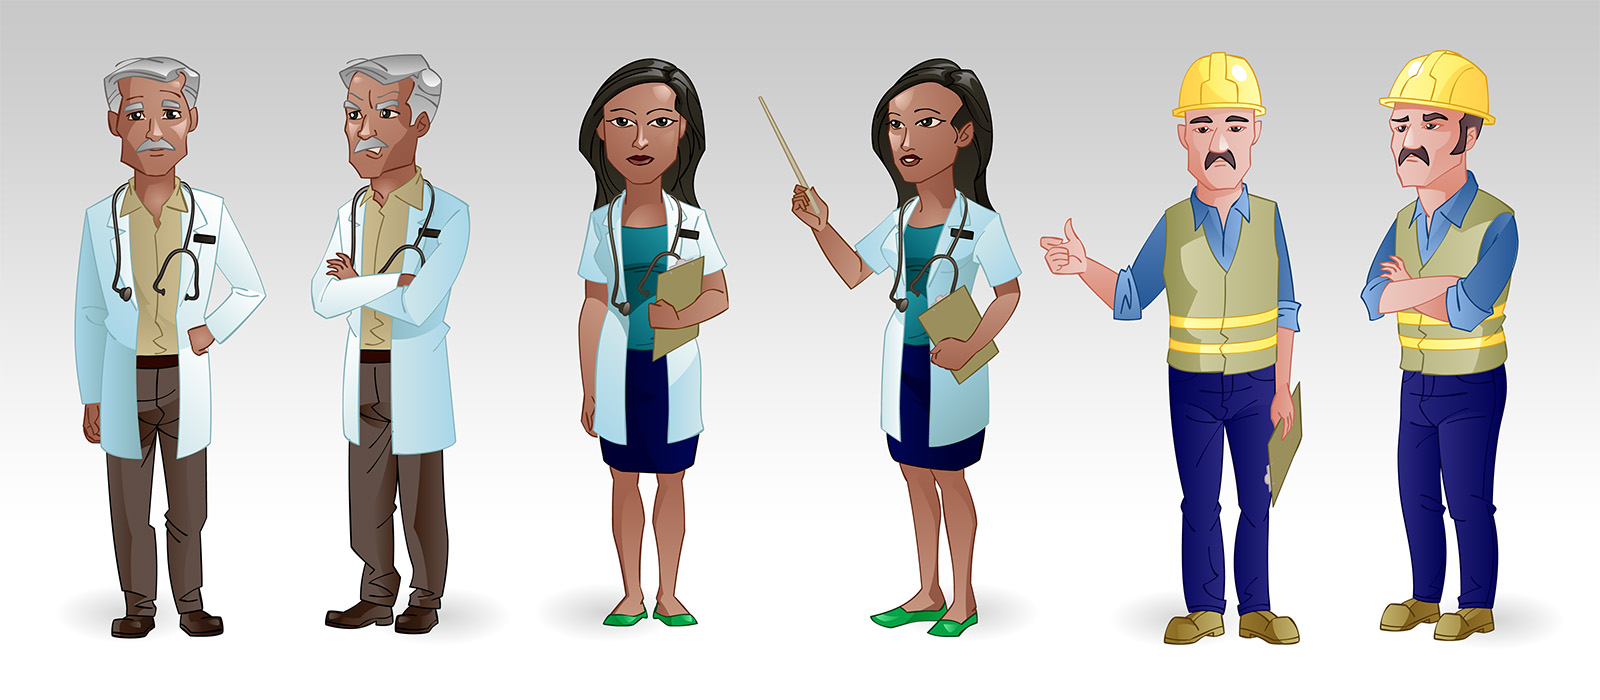 doctor worker e-learning characters